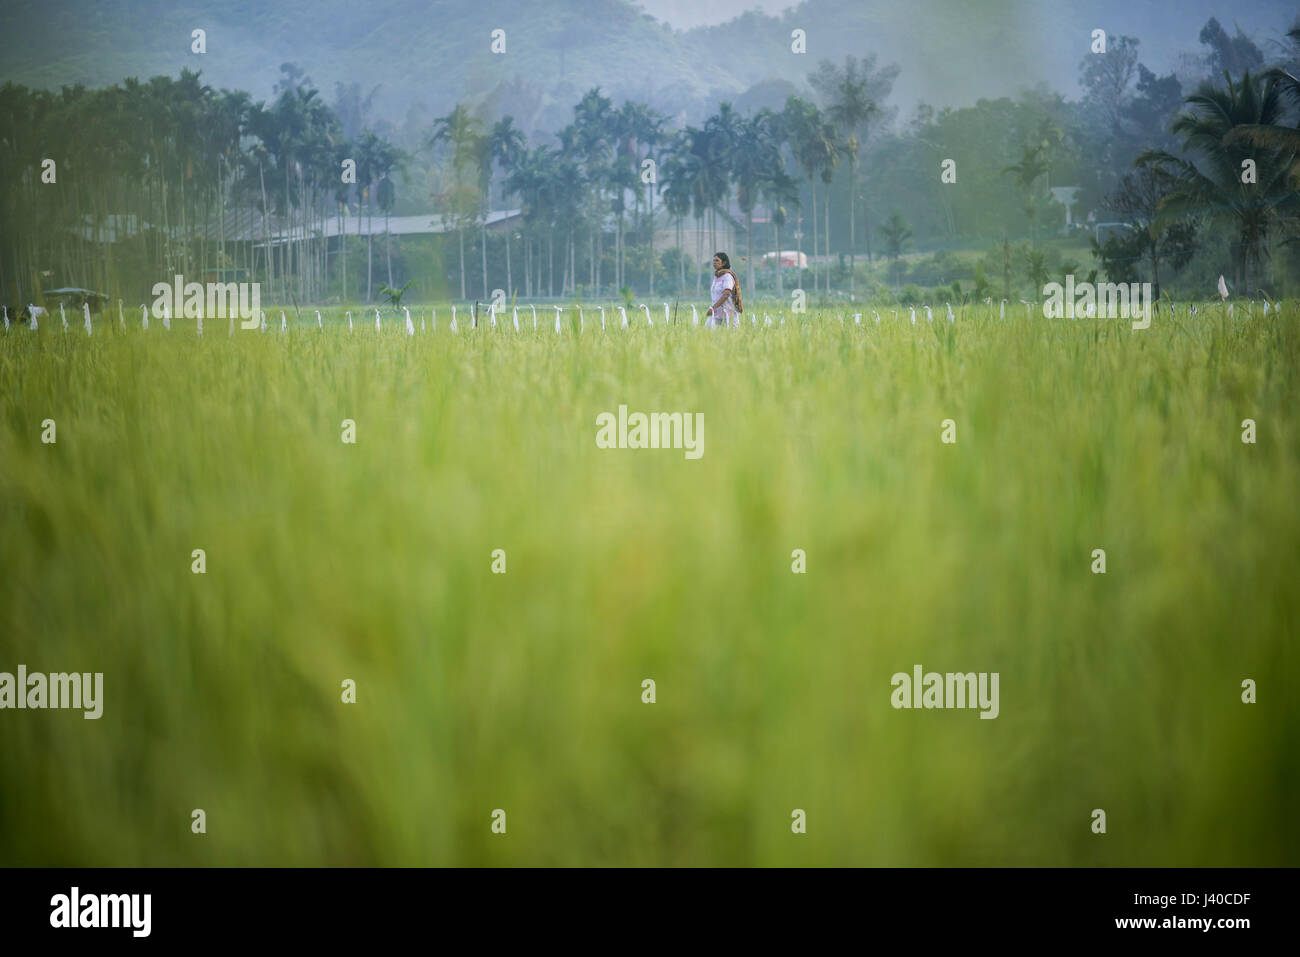 A woman walk across a rice field in the Harau Valley, Sumatra, Indonesia. - Stock Image